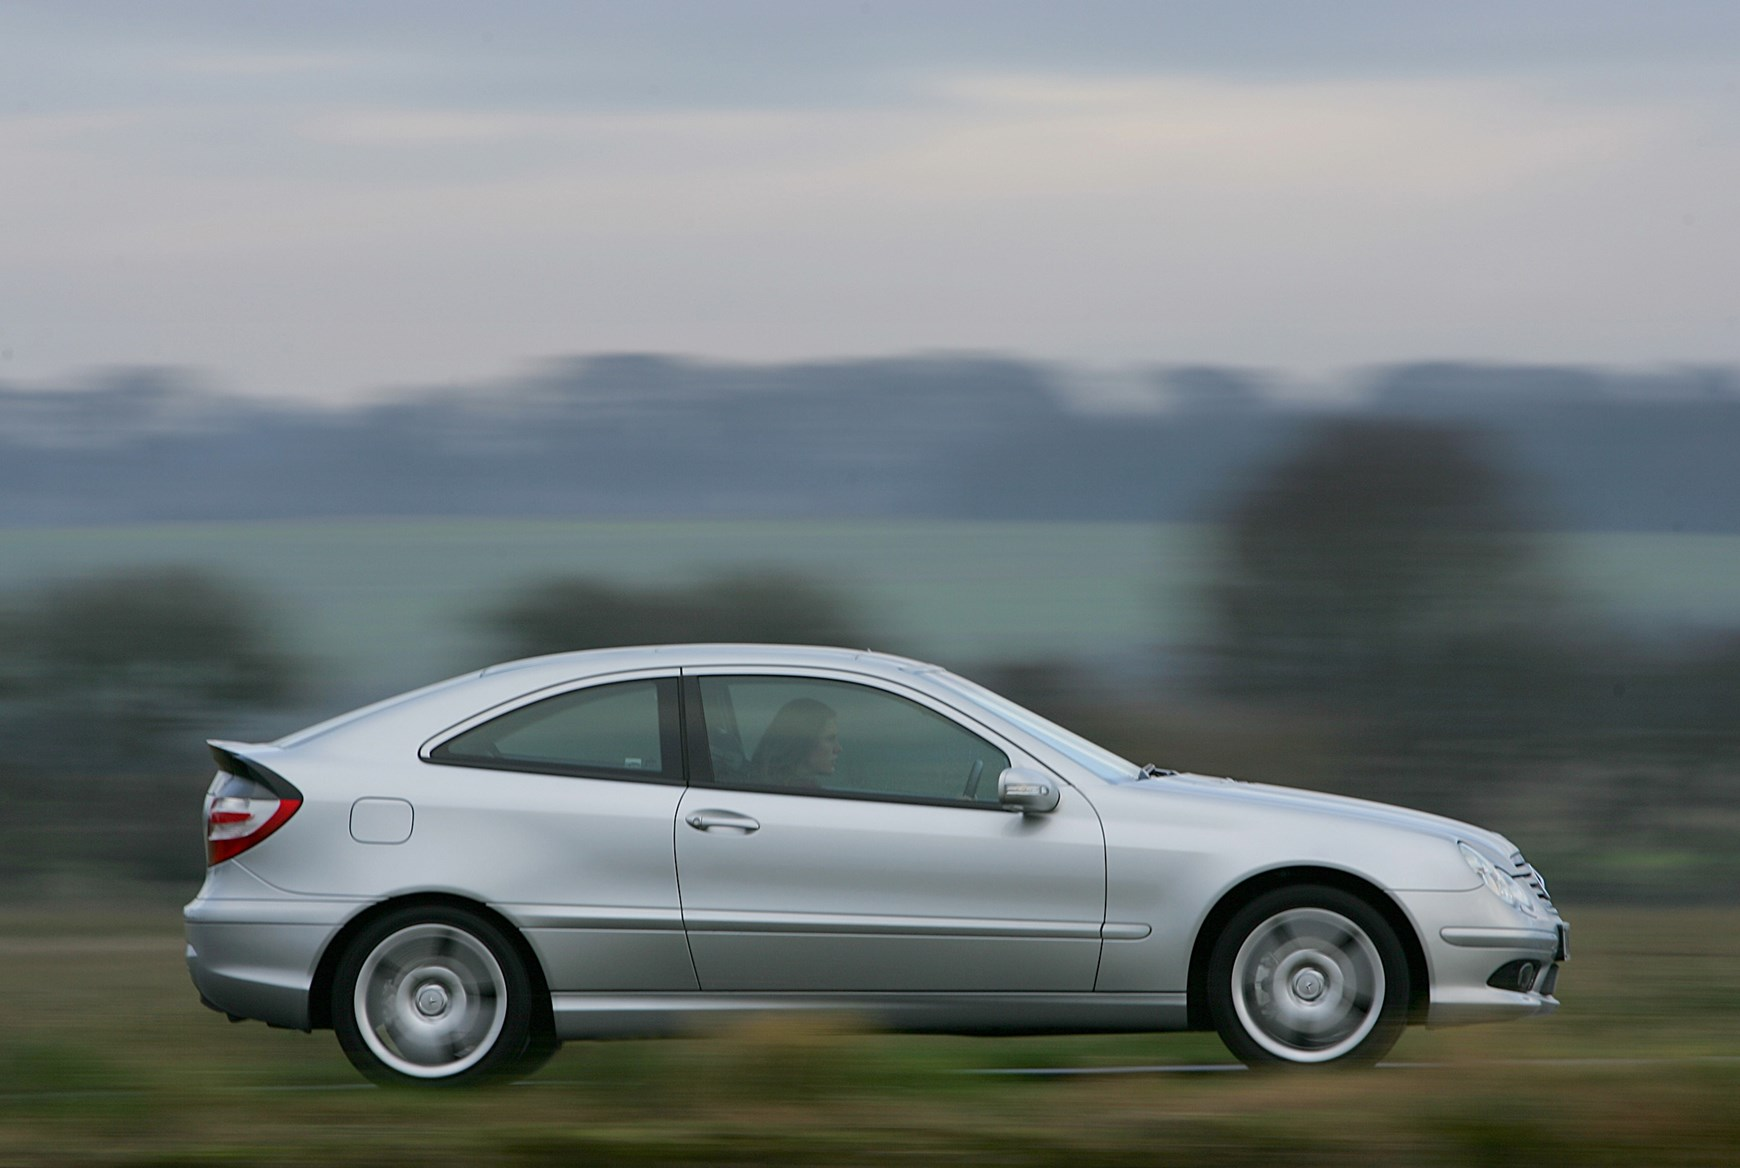 Mercedes Benz C Class Sports Coupe Review 2001 2008 Parkers